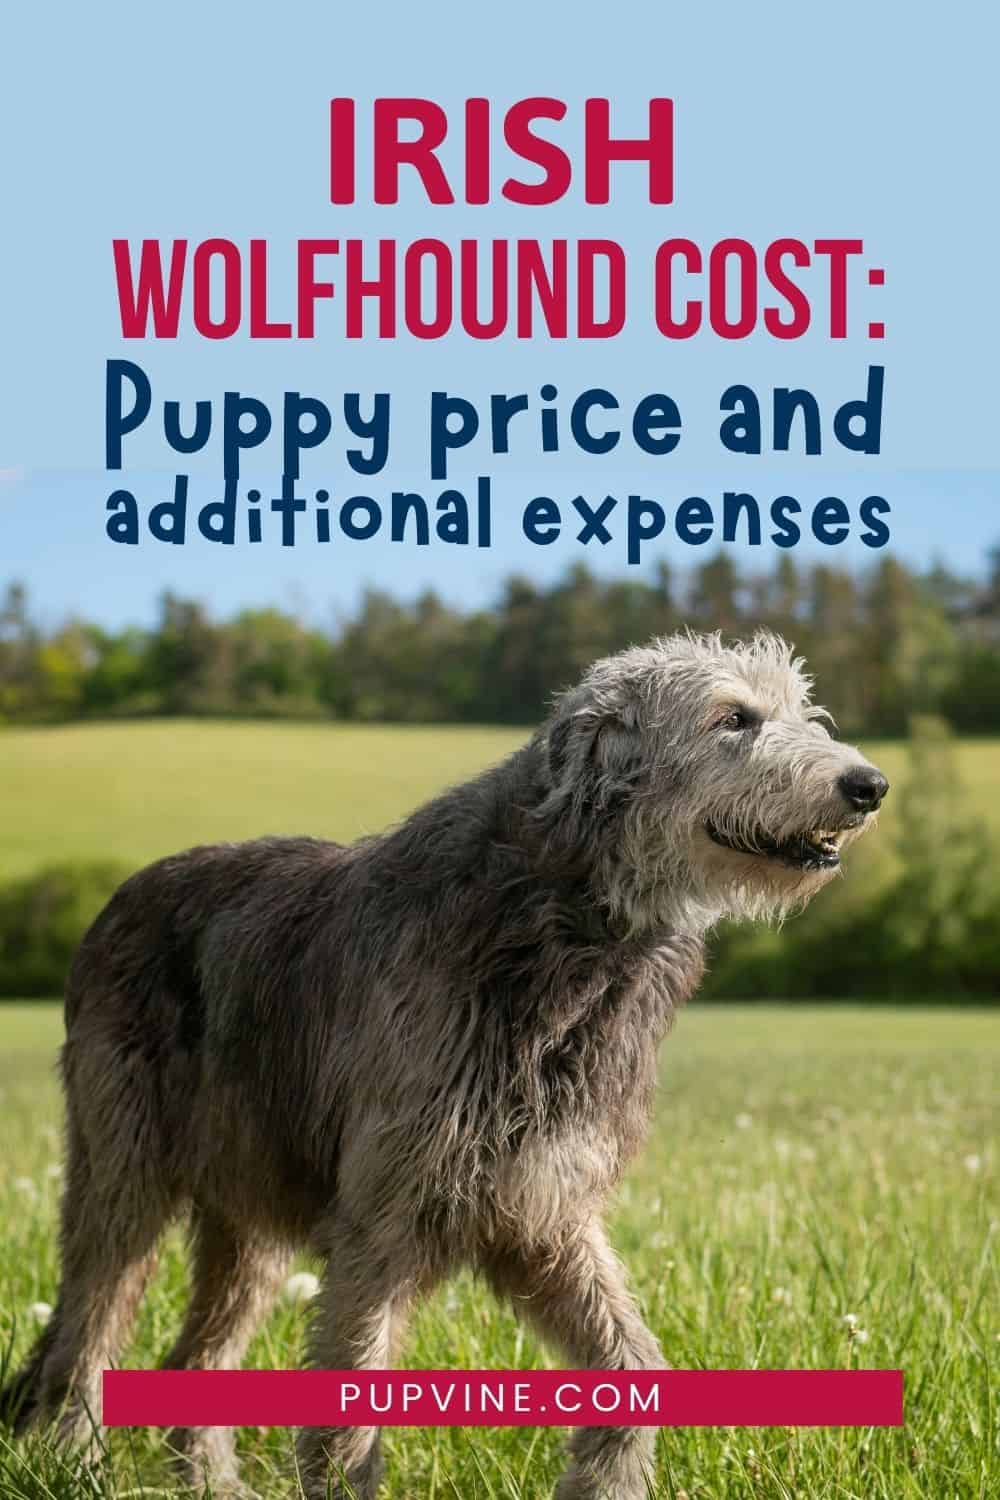 Irish Wolfhound Cost Puppy Price And Additional Expenses